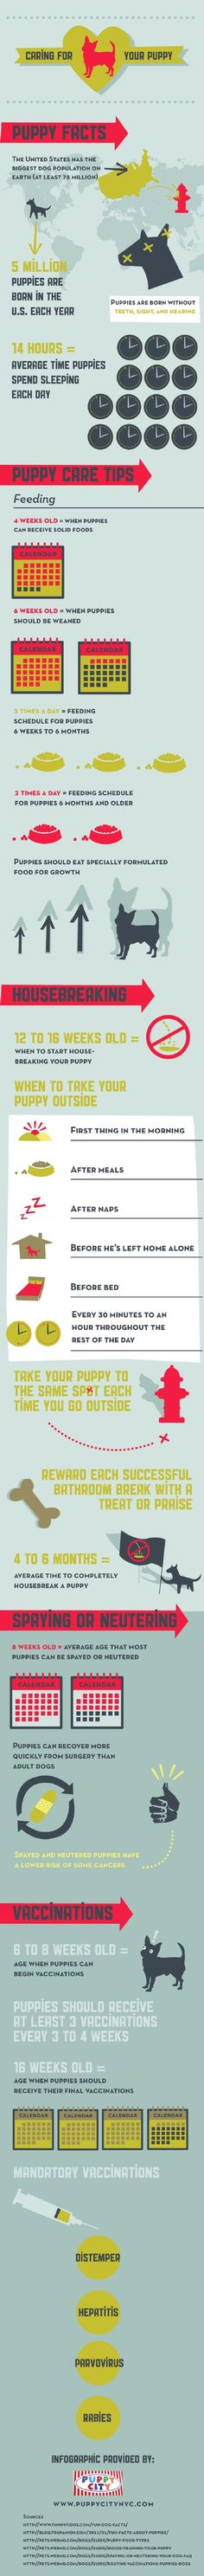 Taking care of your puppy is like taking care of a baby. It requires a lot of patience, dedication, and love. This chart will help you learn some of the basics to raising and taking care of a puppy so you know what to expect.